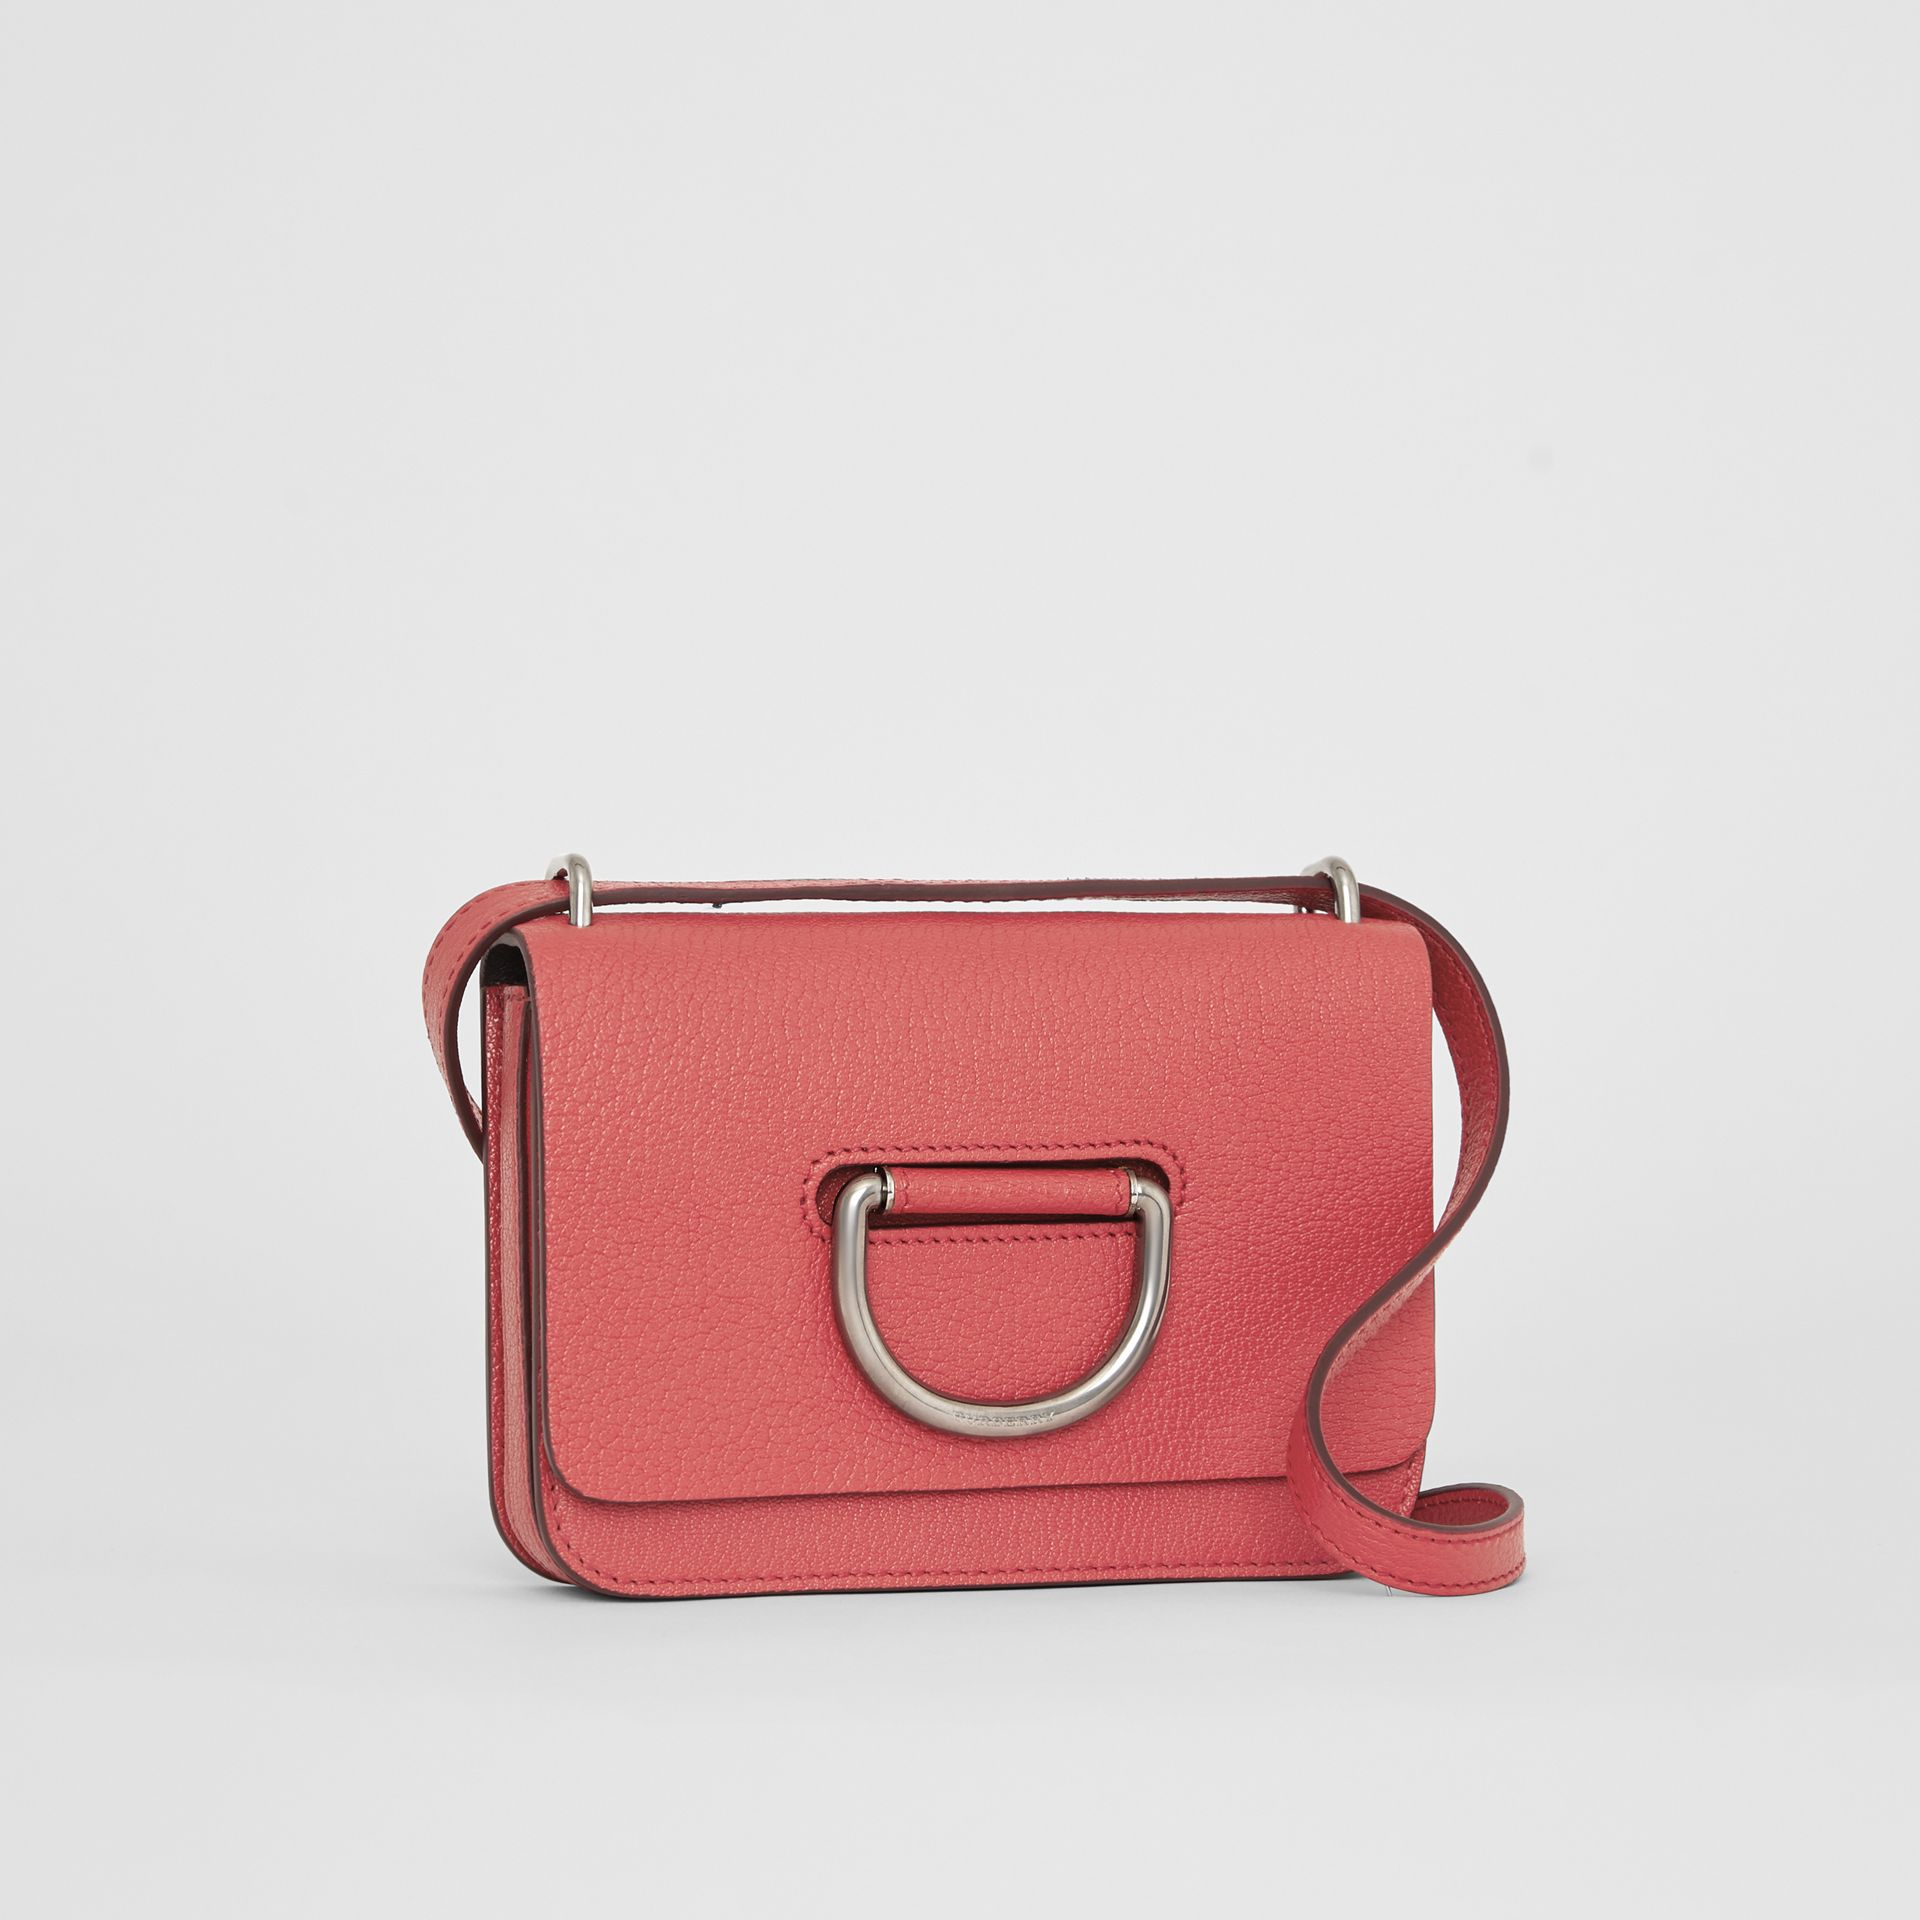 Borsa The D-ring mini in pelle (Rosa Corallo Brillante) - Donna | Burberry - immagine della galleria 6